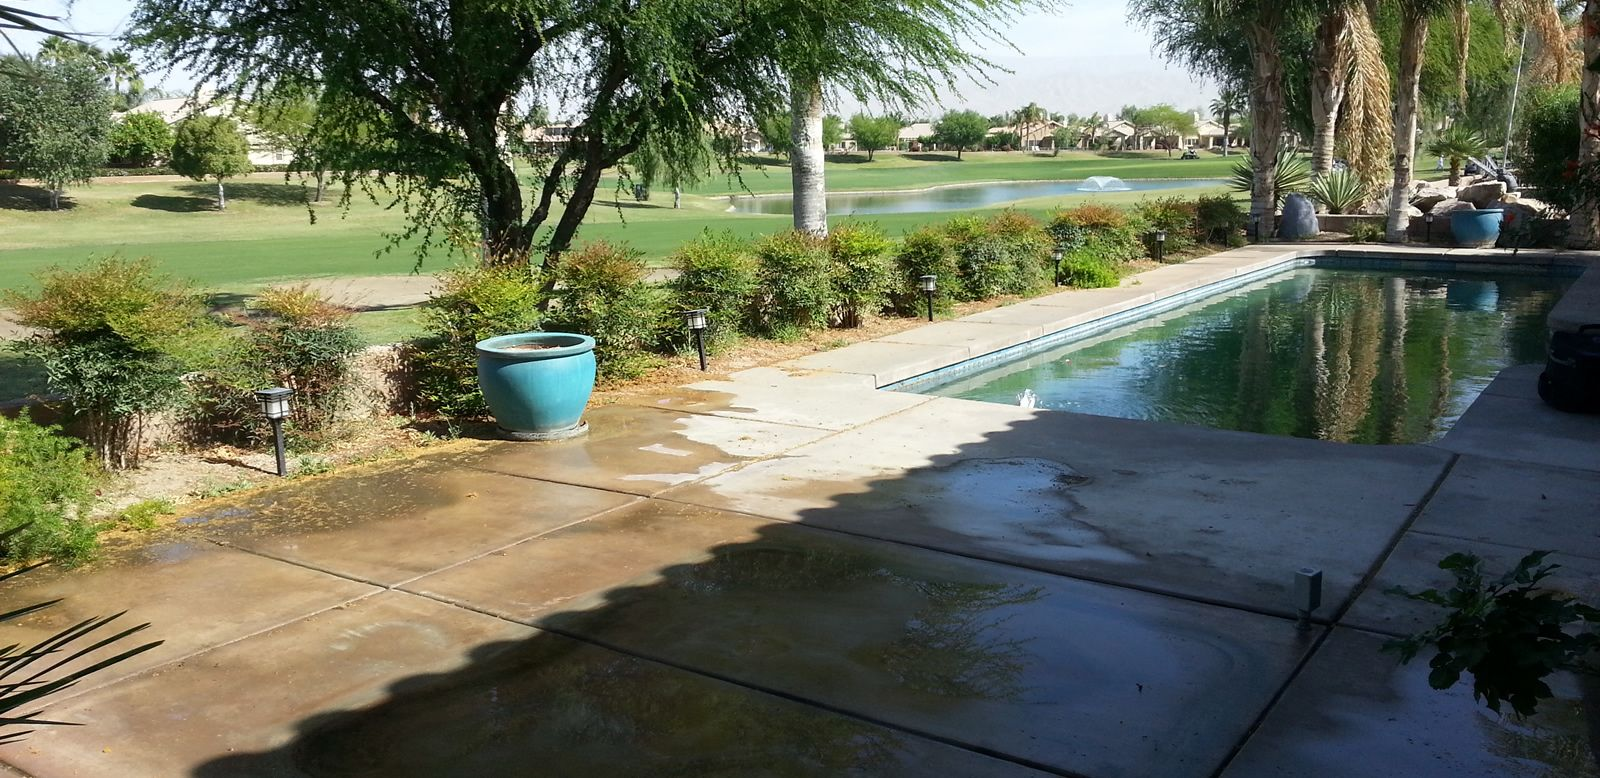 Classy After So Cal Spa Removal Riverside Spa Removal Company Murrieta Day Spa Jobs Murrieta Day Spa Services Riverside Ca Before Above Ground Hot Tub Removal houzz 01 Murrieta Day Spa